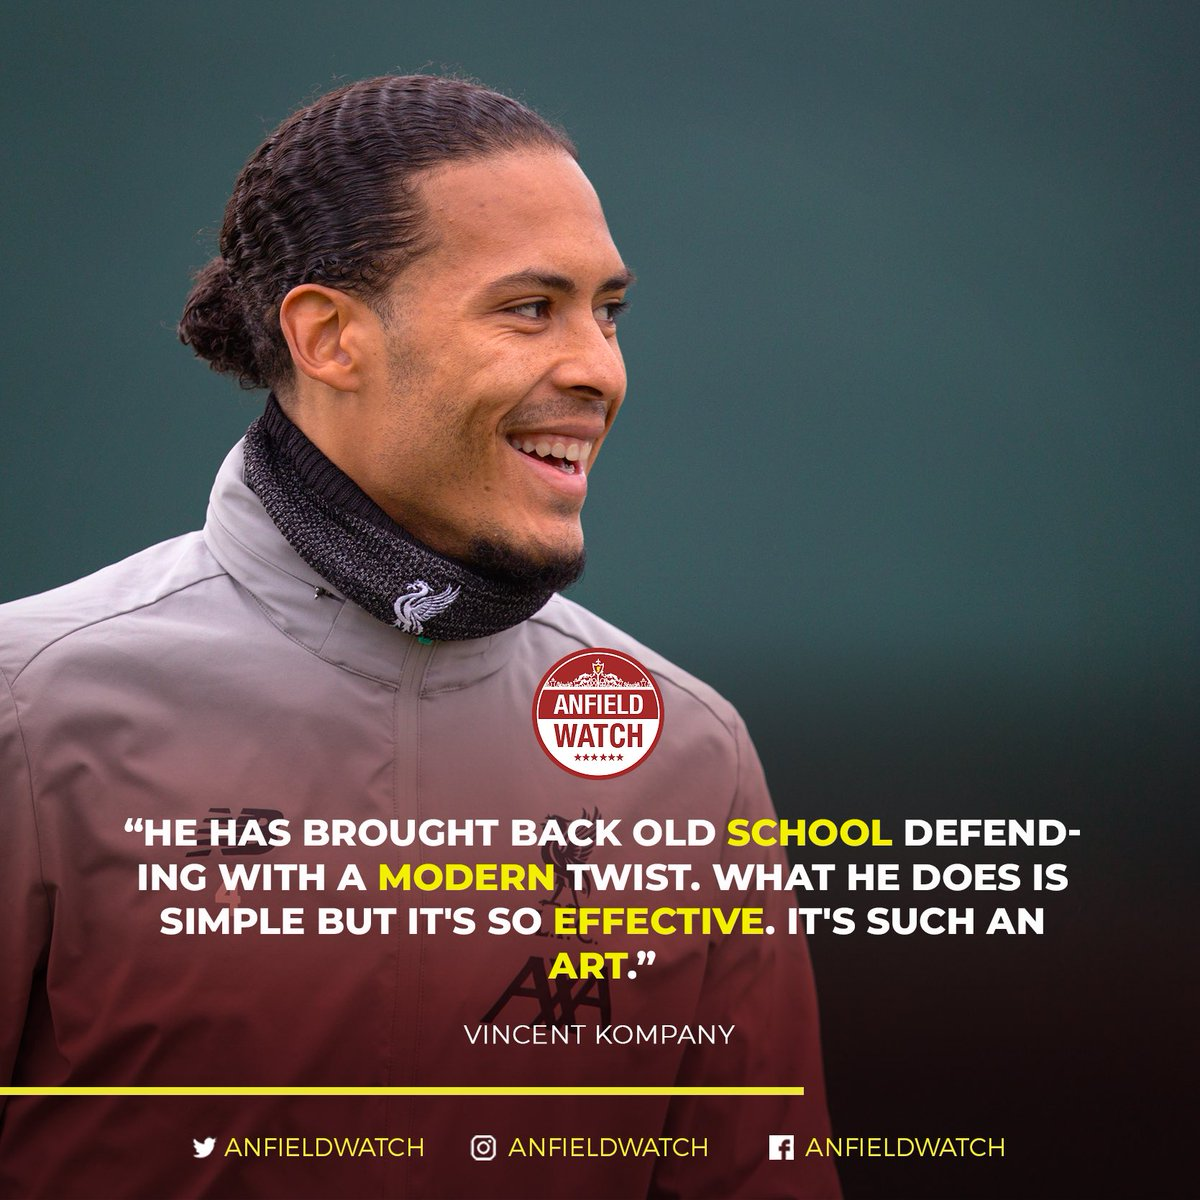 Vincent Kompany has reiterated his belief that Virgil van Dijk is the greatest ever defender in Premier League history. 🙌⁣